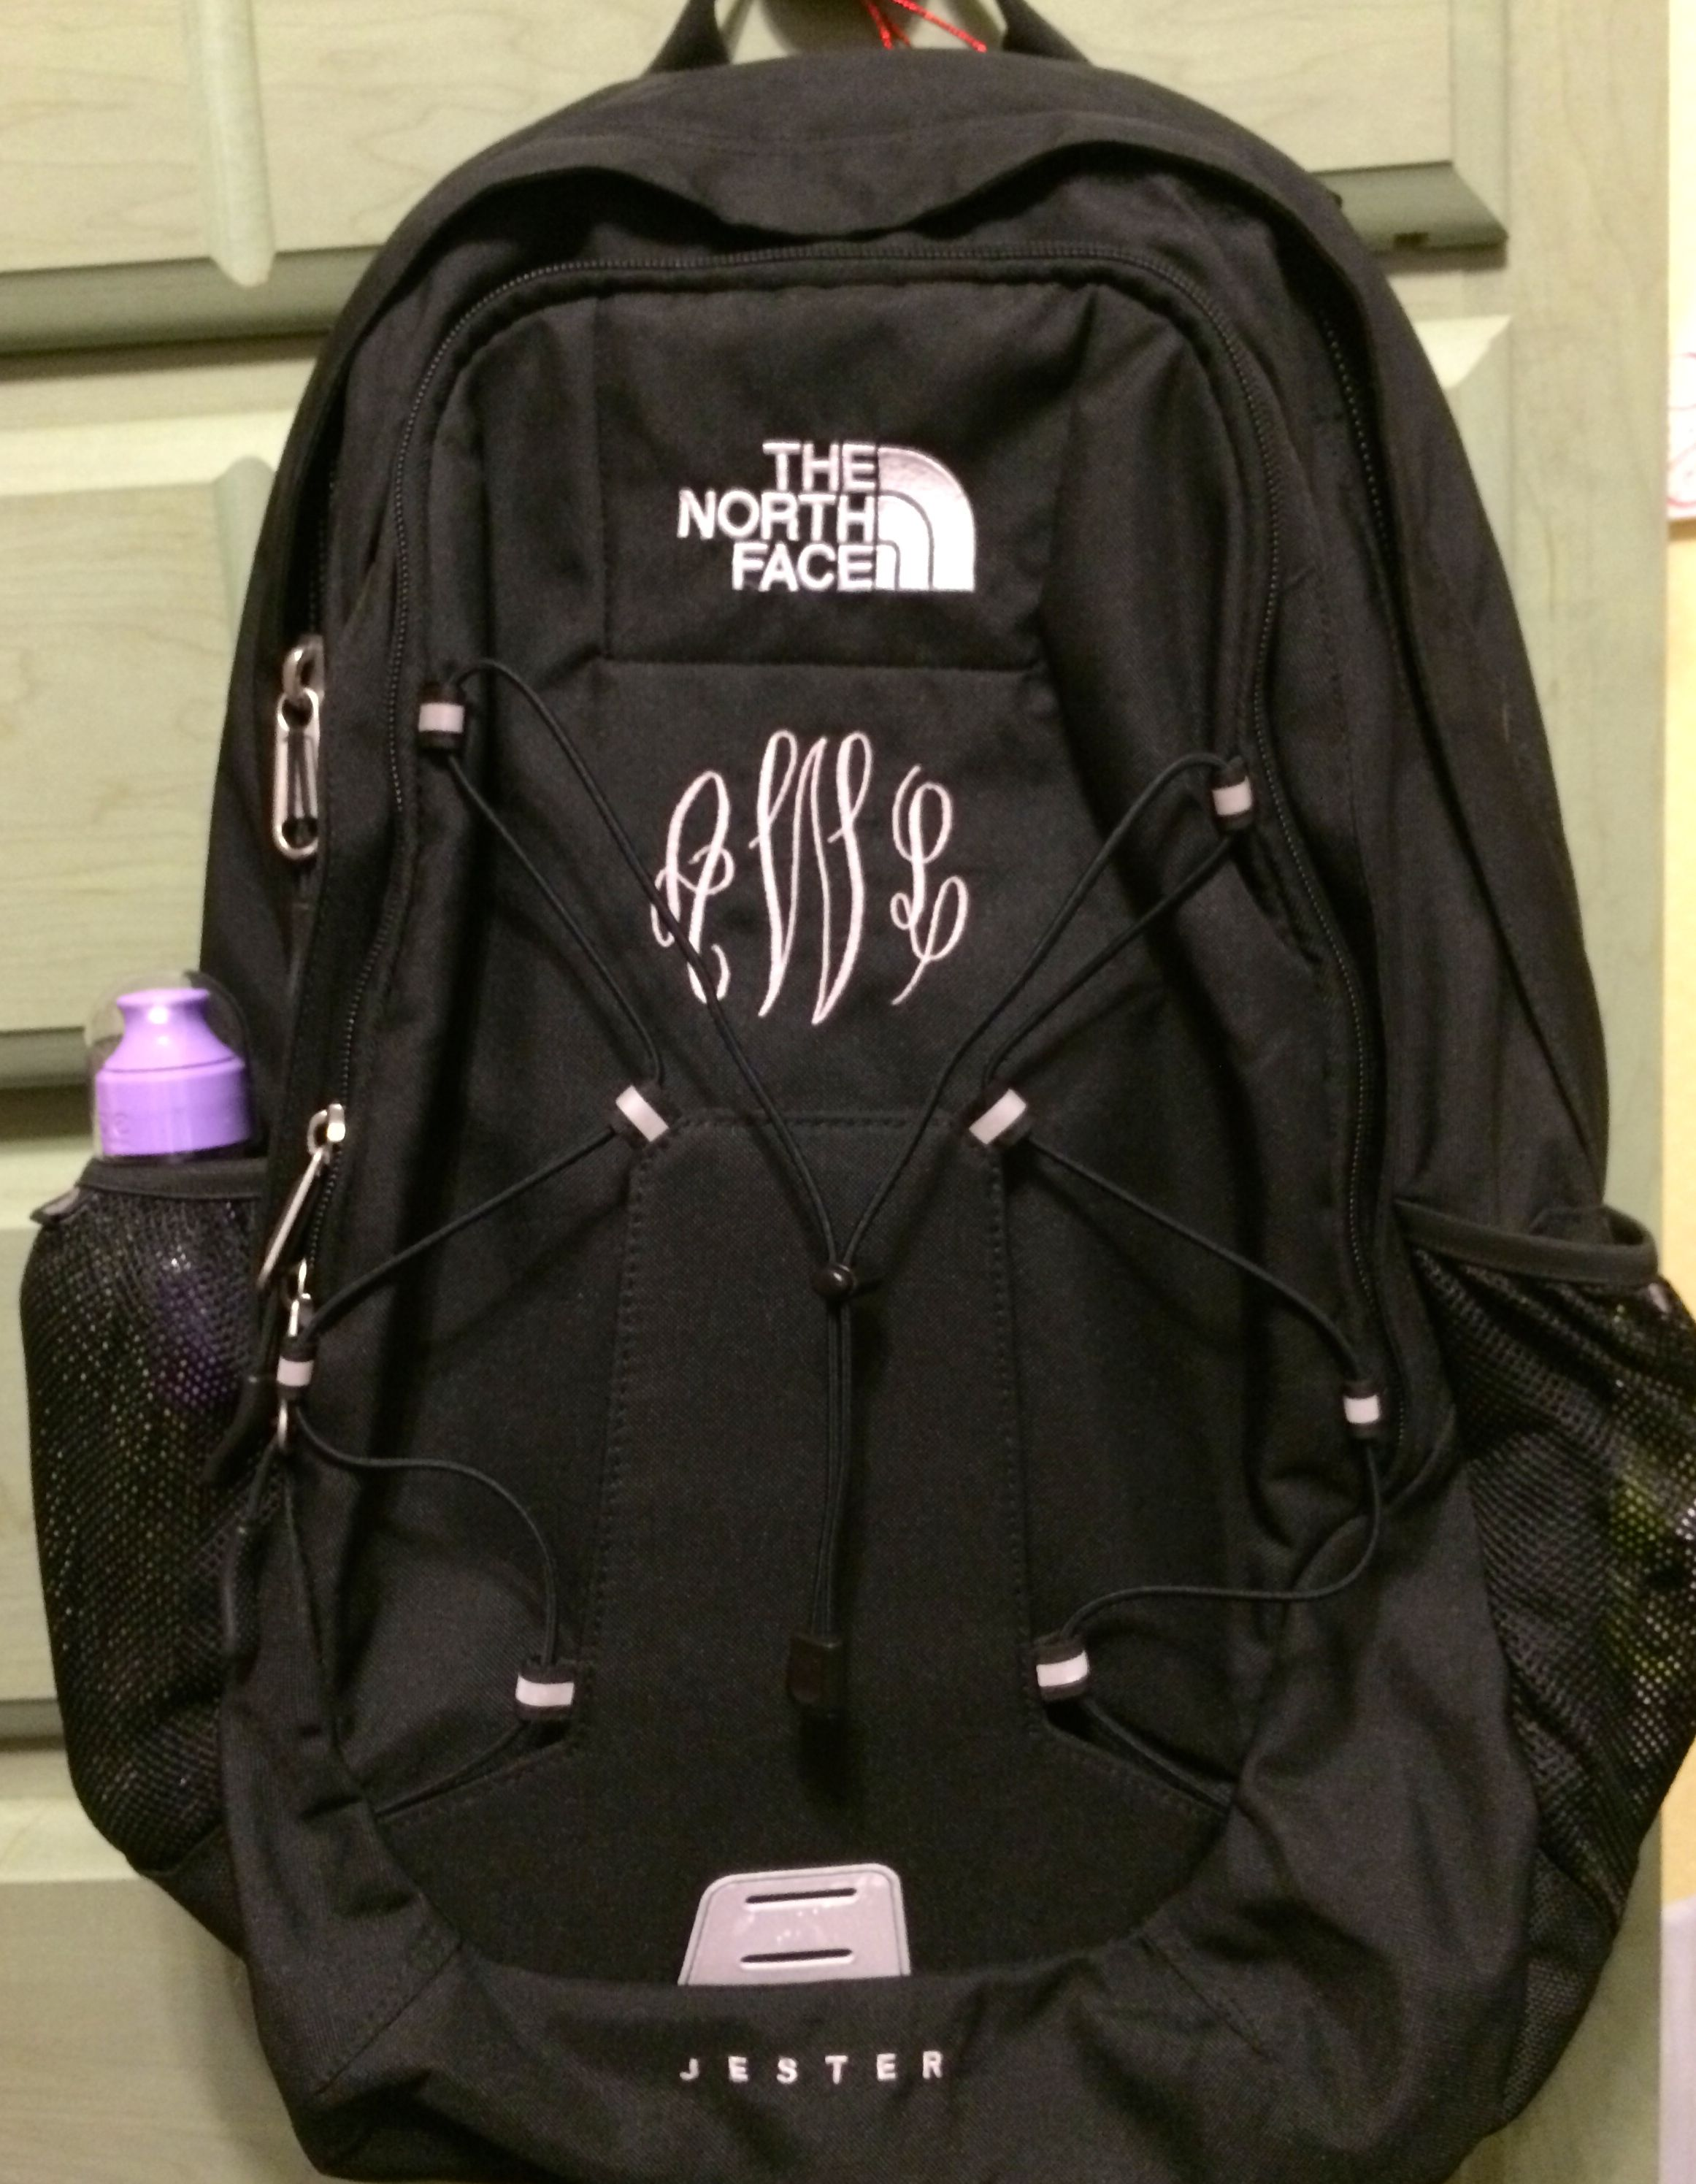 e63d899e08 Finally got my North Face backpack monogrammed!